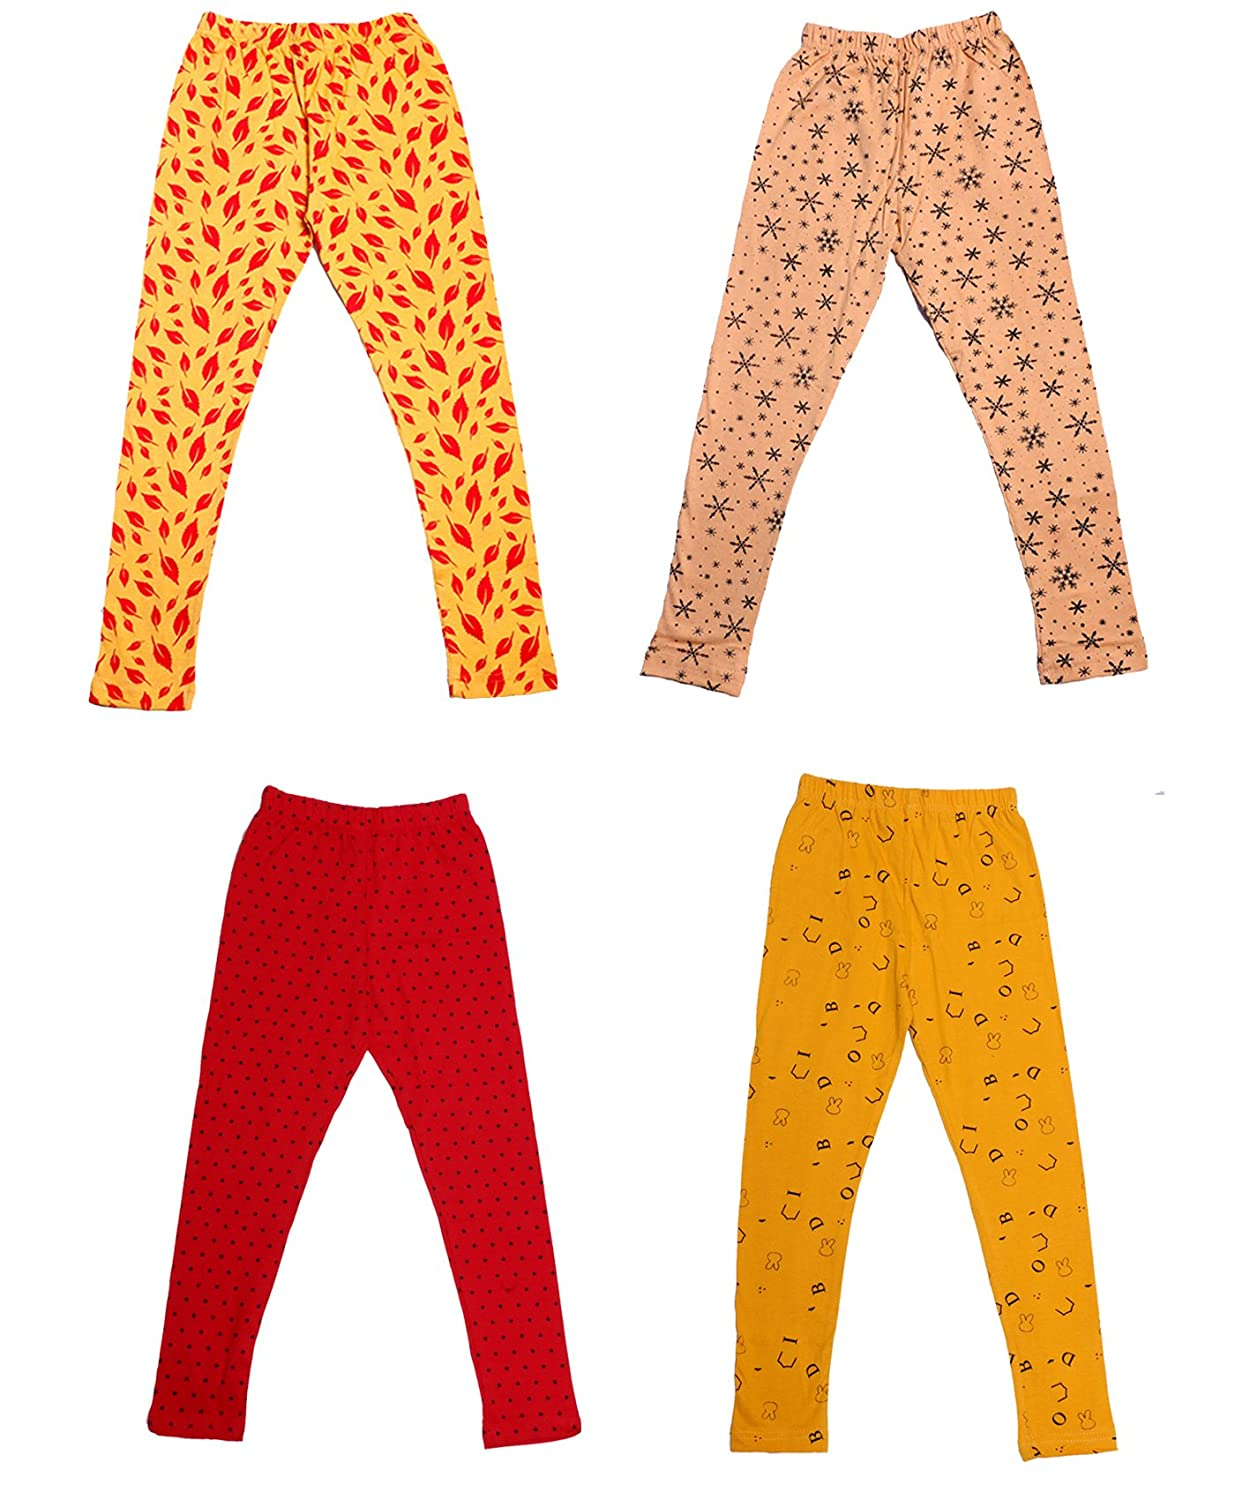 Indistar Girls Super Soft and Stylish Cotton Printed Churidar Legging Pack of 4